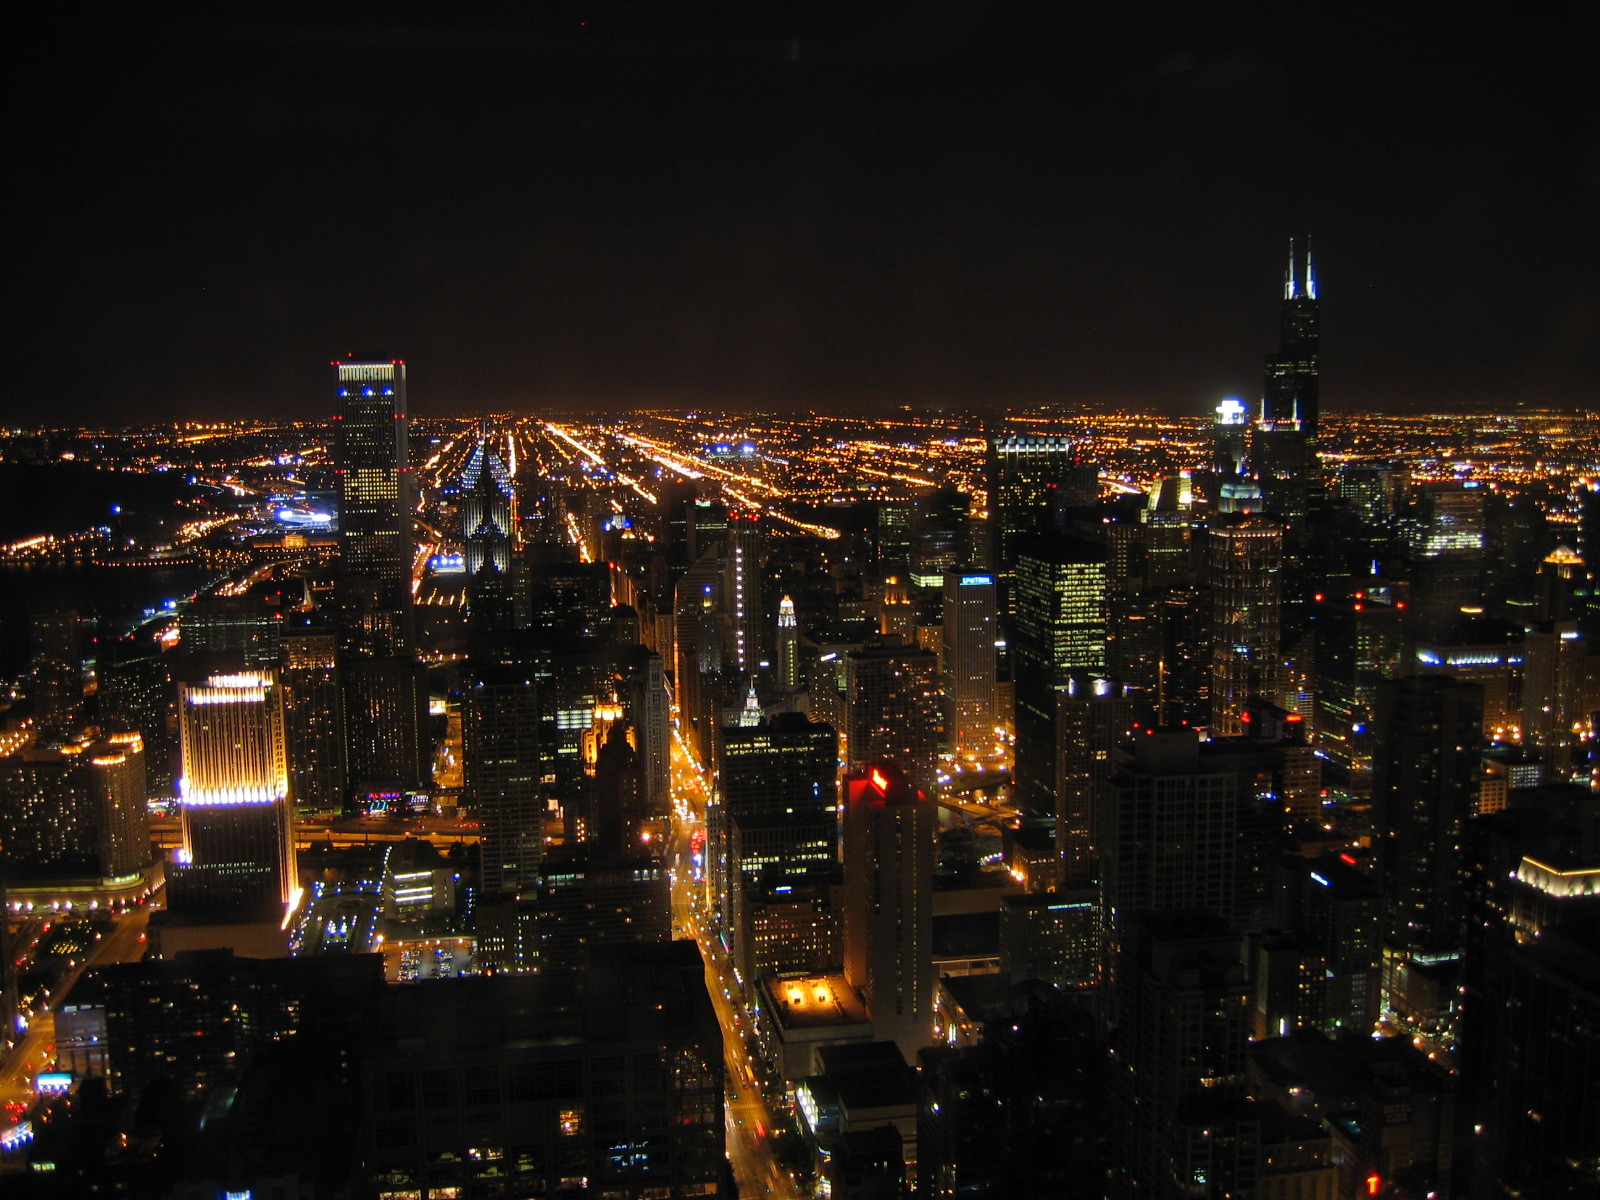 The City At Night From The Sky